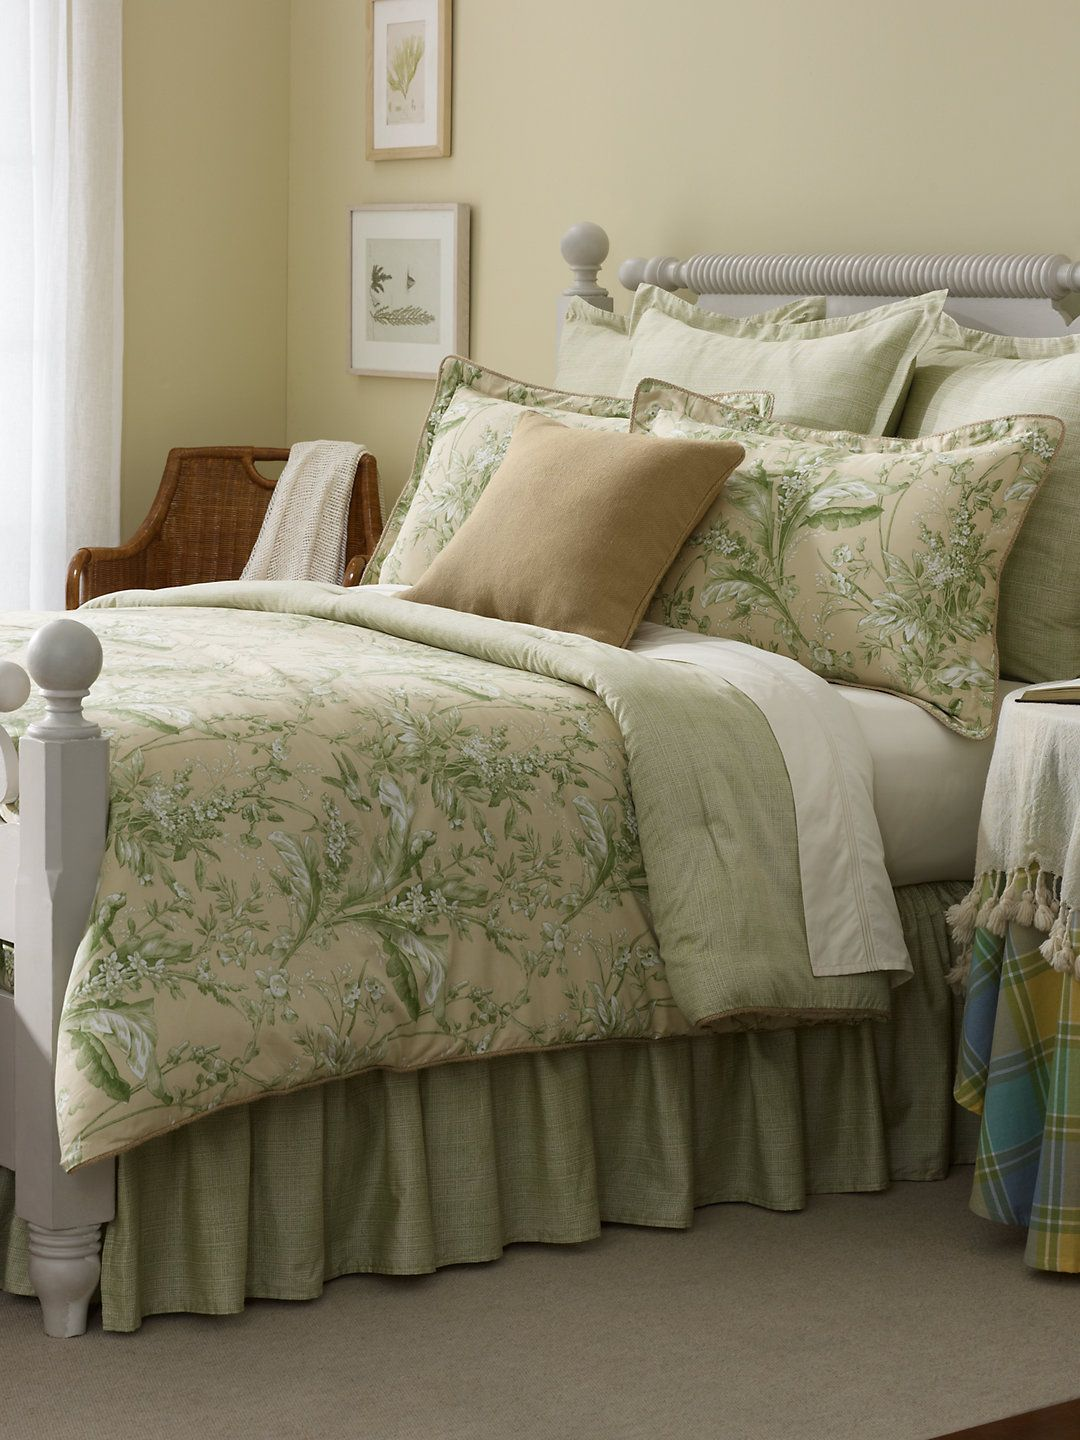 grand isle comforter ralph lauren bed linen comforters fabric pattern green cream bedroom